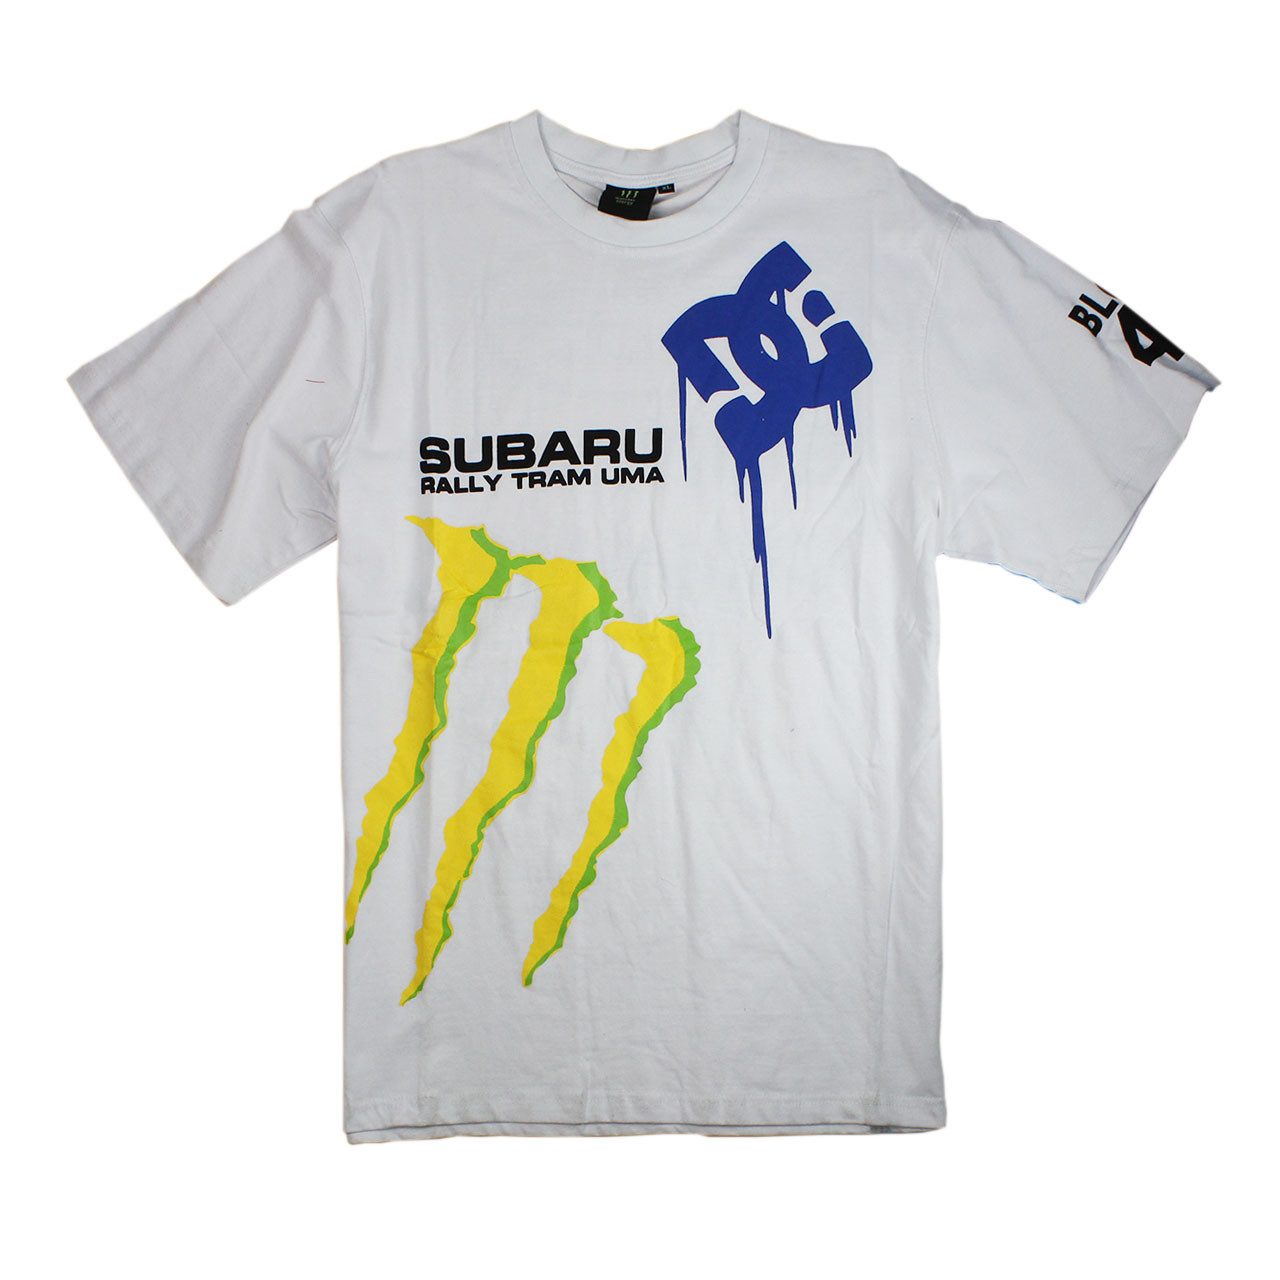 Футболка Monster Energy с логотипом Subaru